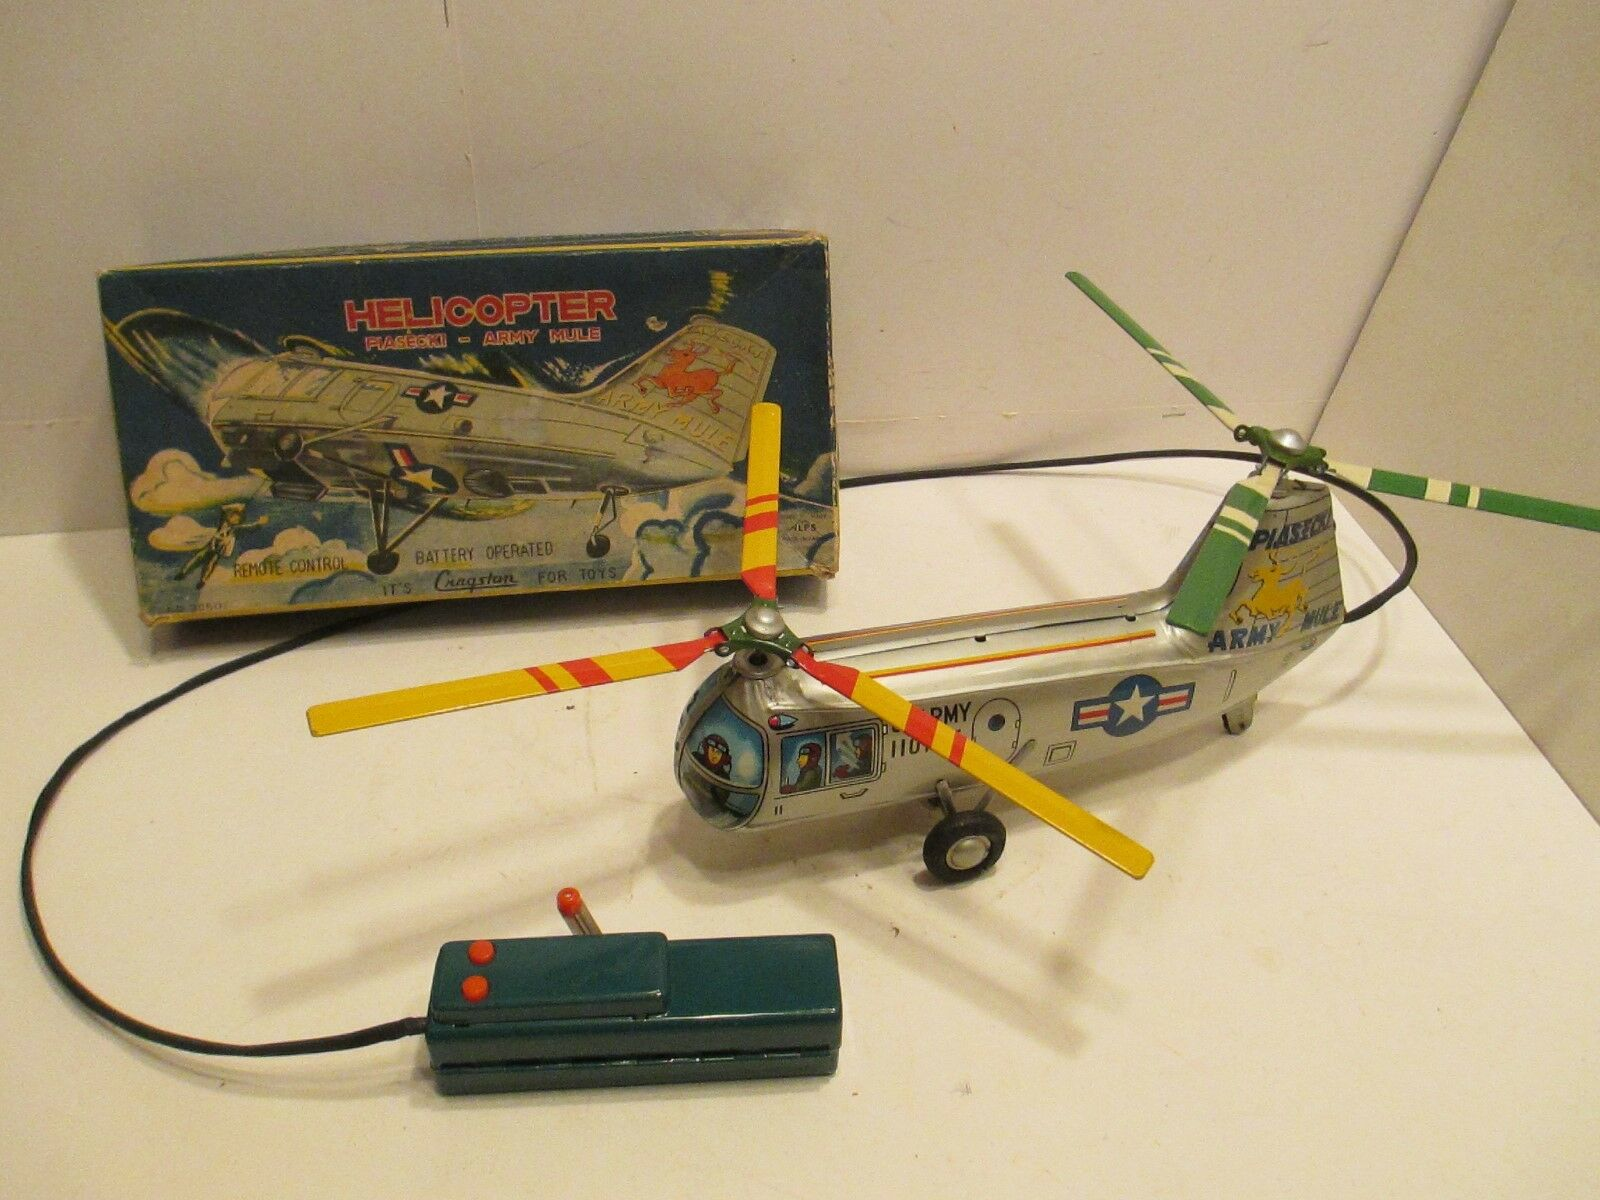 HELICOPTER PIASECKI ARMY MULE NEAR MINT IN BOX BATTERY OP TESTED WORKS GOOD